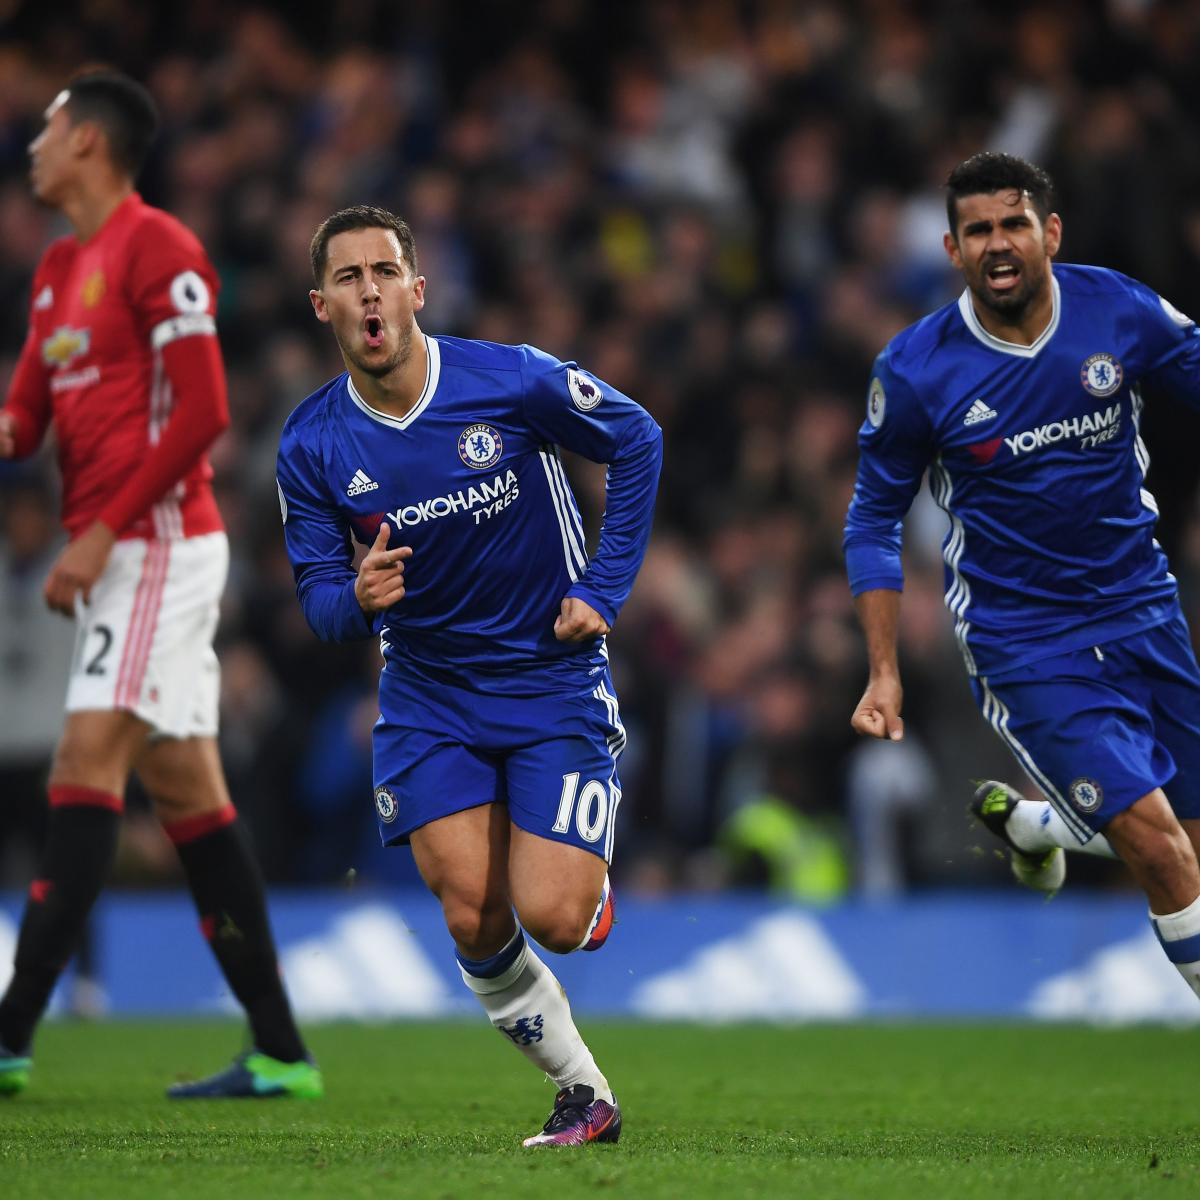 Chelsea Vs Tottenham Score Reaction From 2016 Premier: Chelsea Vs. Manchester United: Score And Reaction From